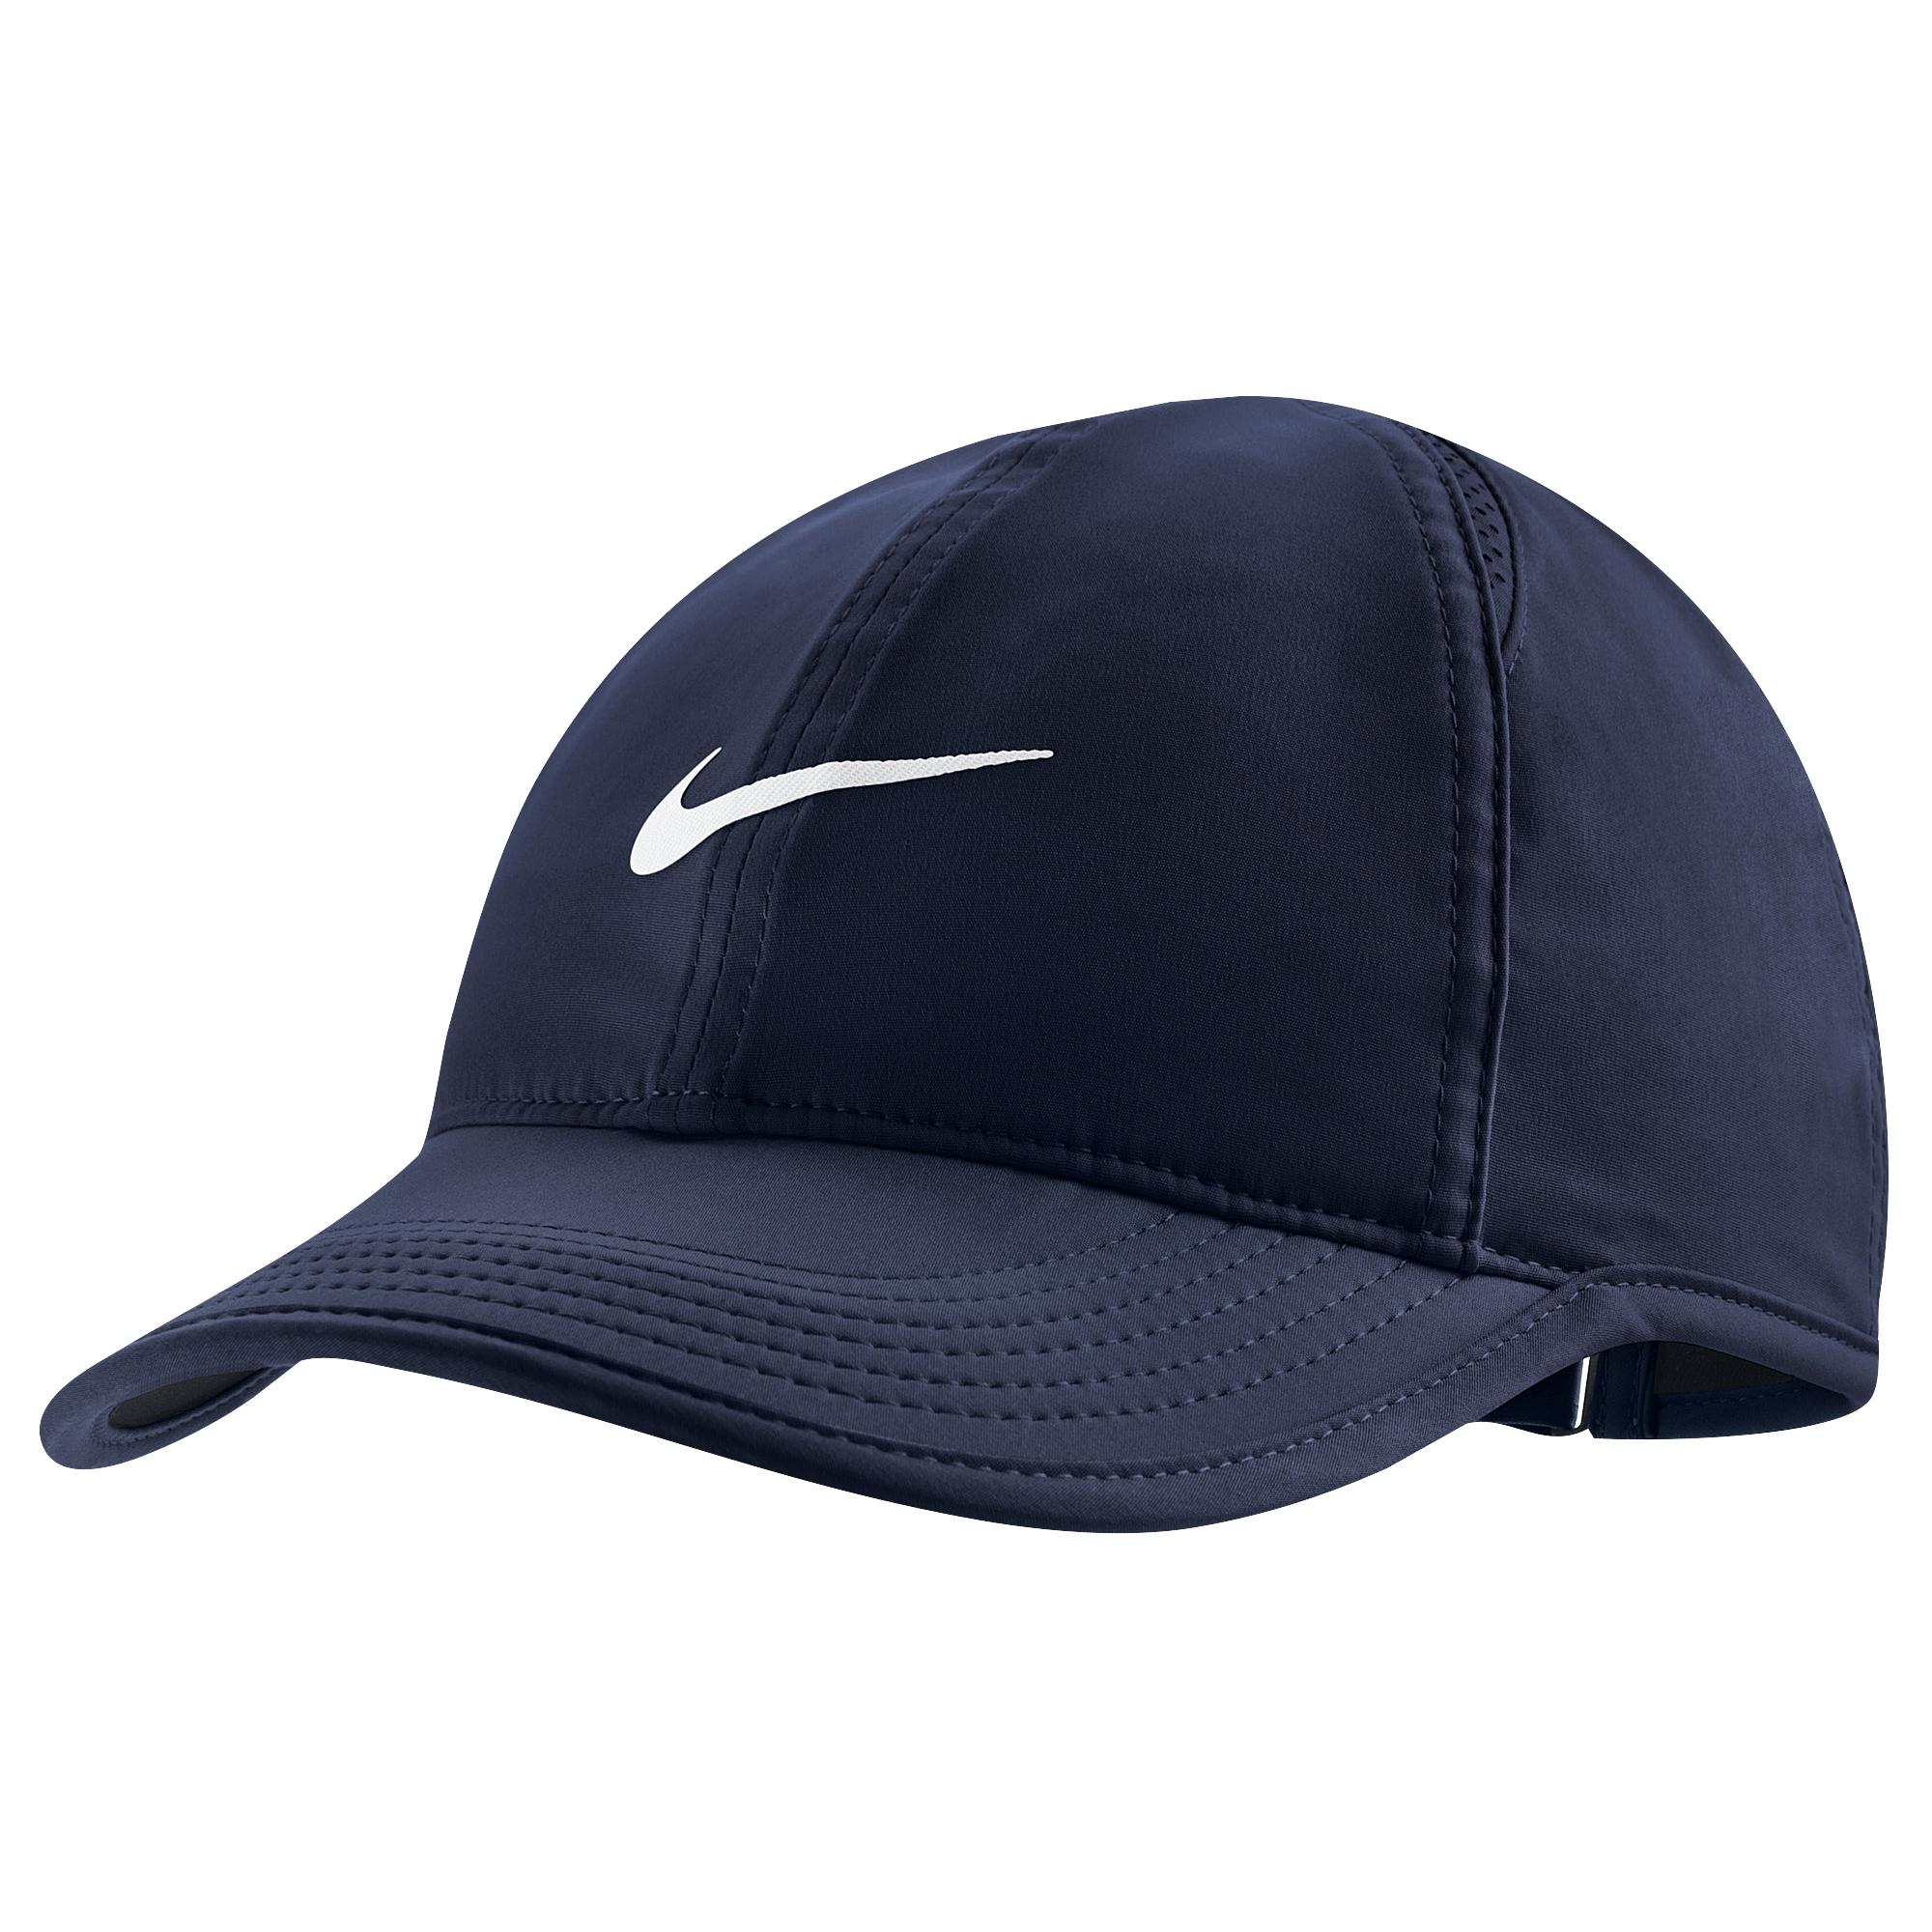 365969ae6a0 Lyst - Nike Dri-fit Featherlight Cap in Blue for Men